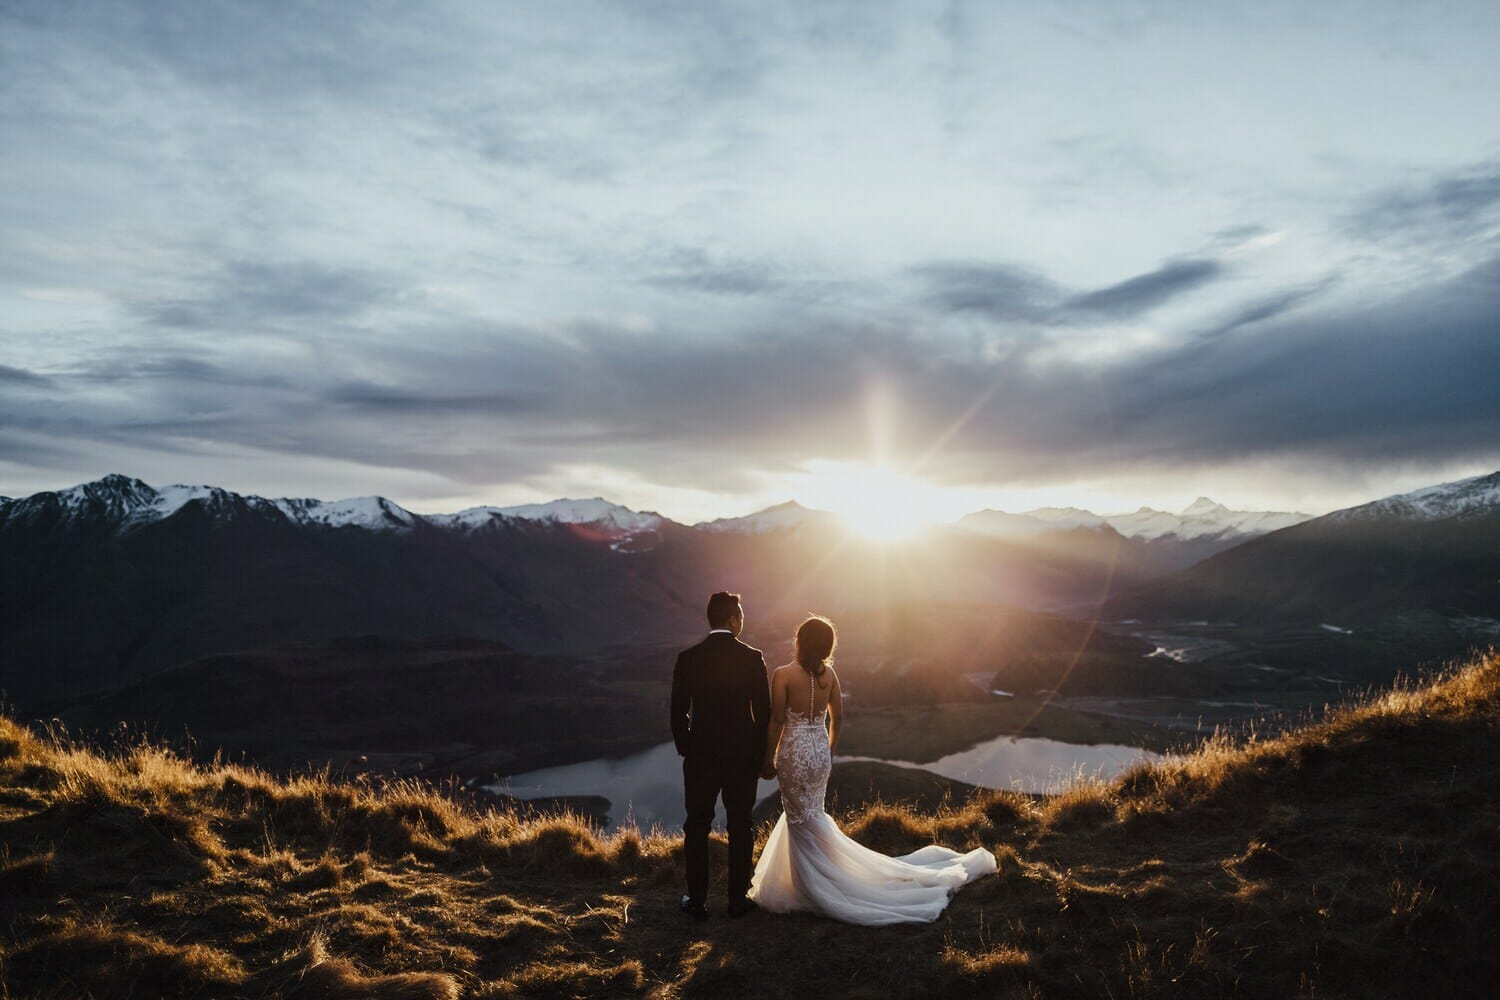 Vichi + Anthony Mountain Wedding, New Zealand Elopement Wedding Photographer